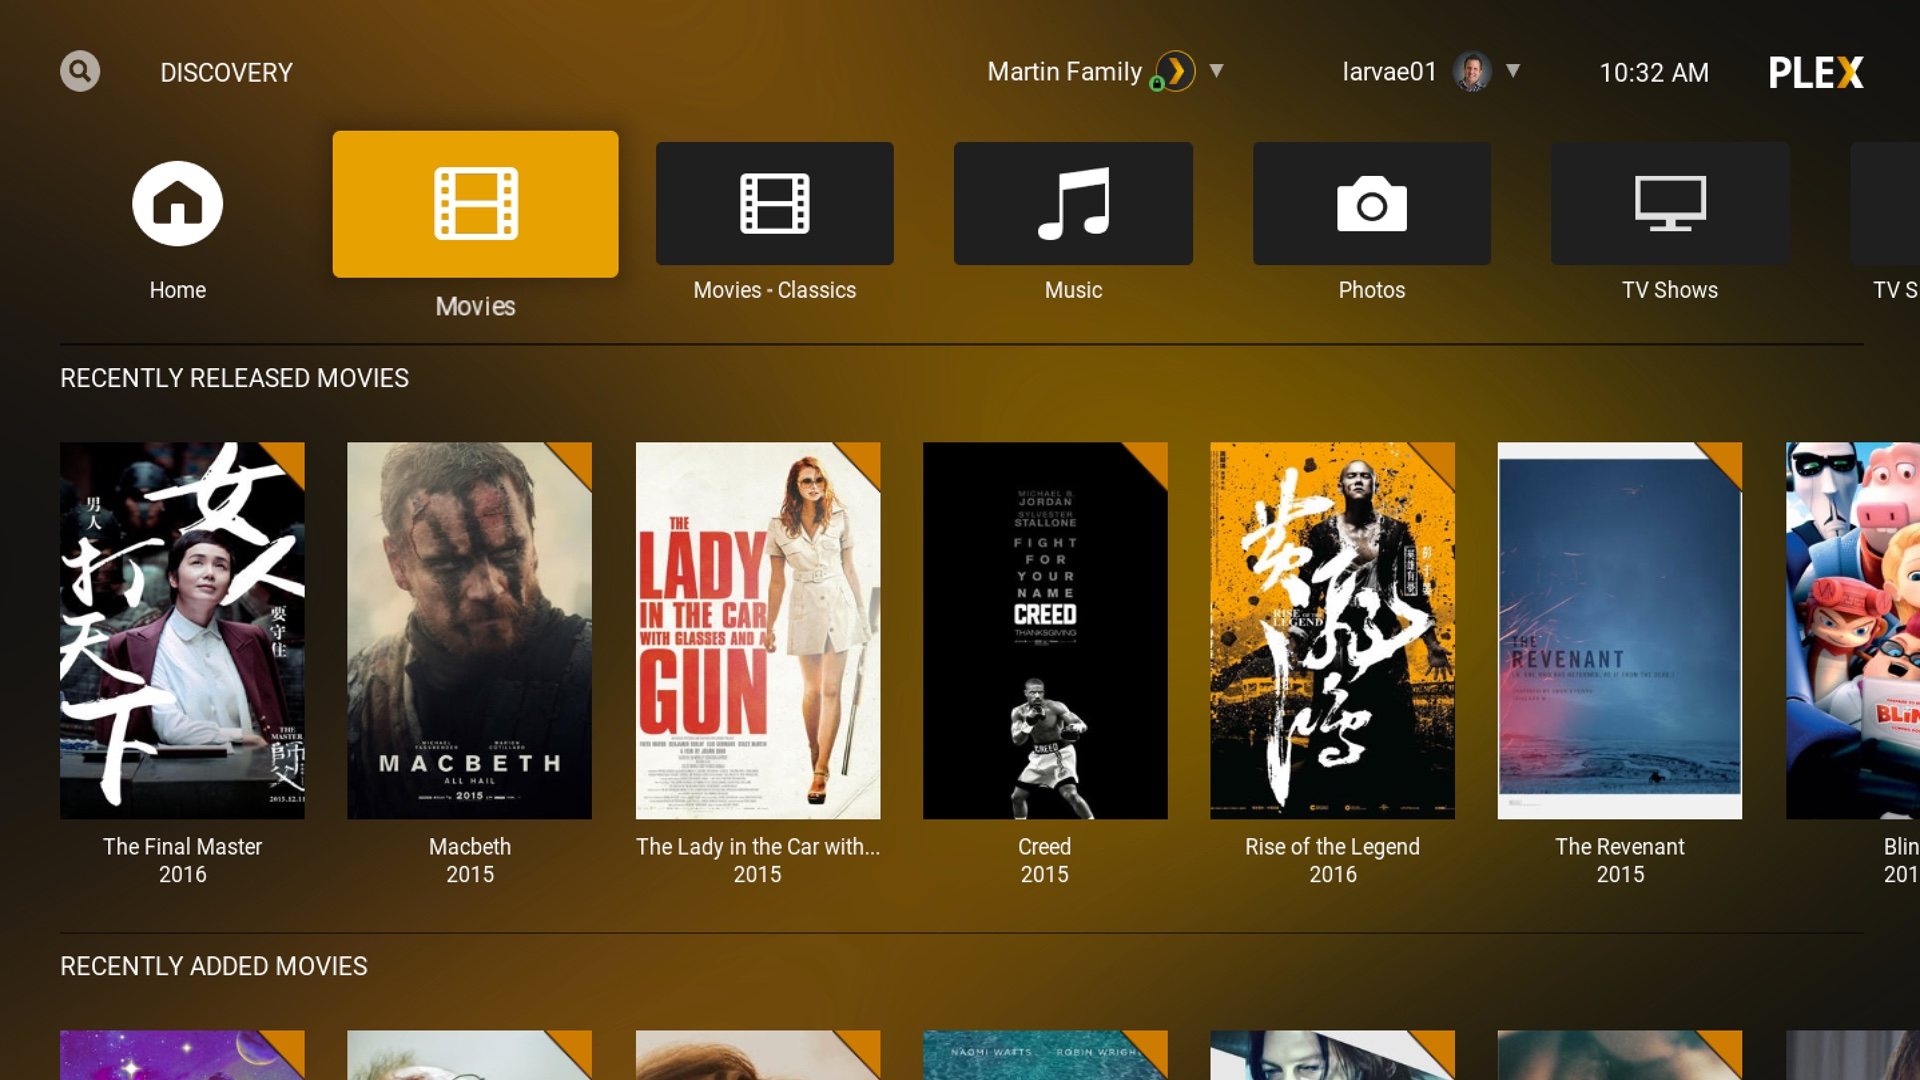 Plex Media Player app is now free to everyone, Plex for Kodi add-on